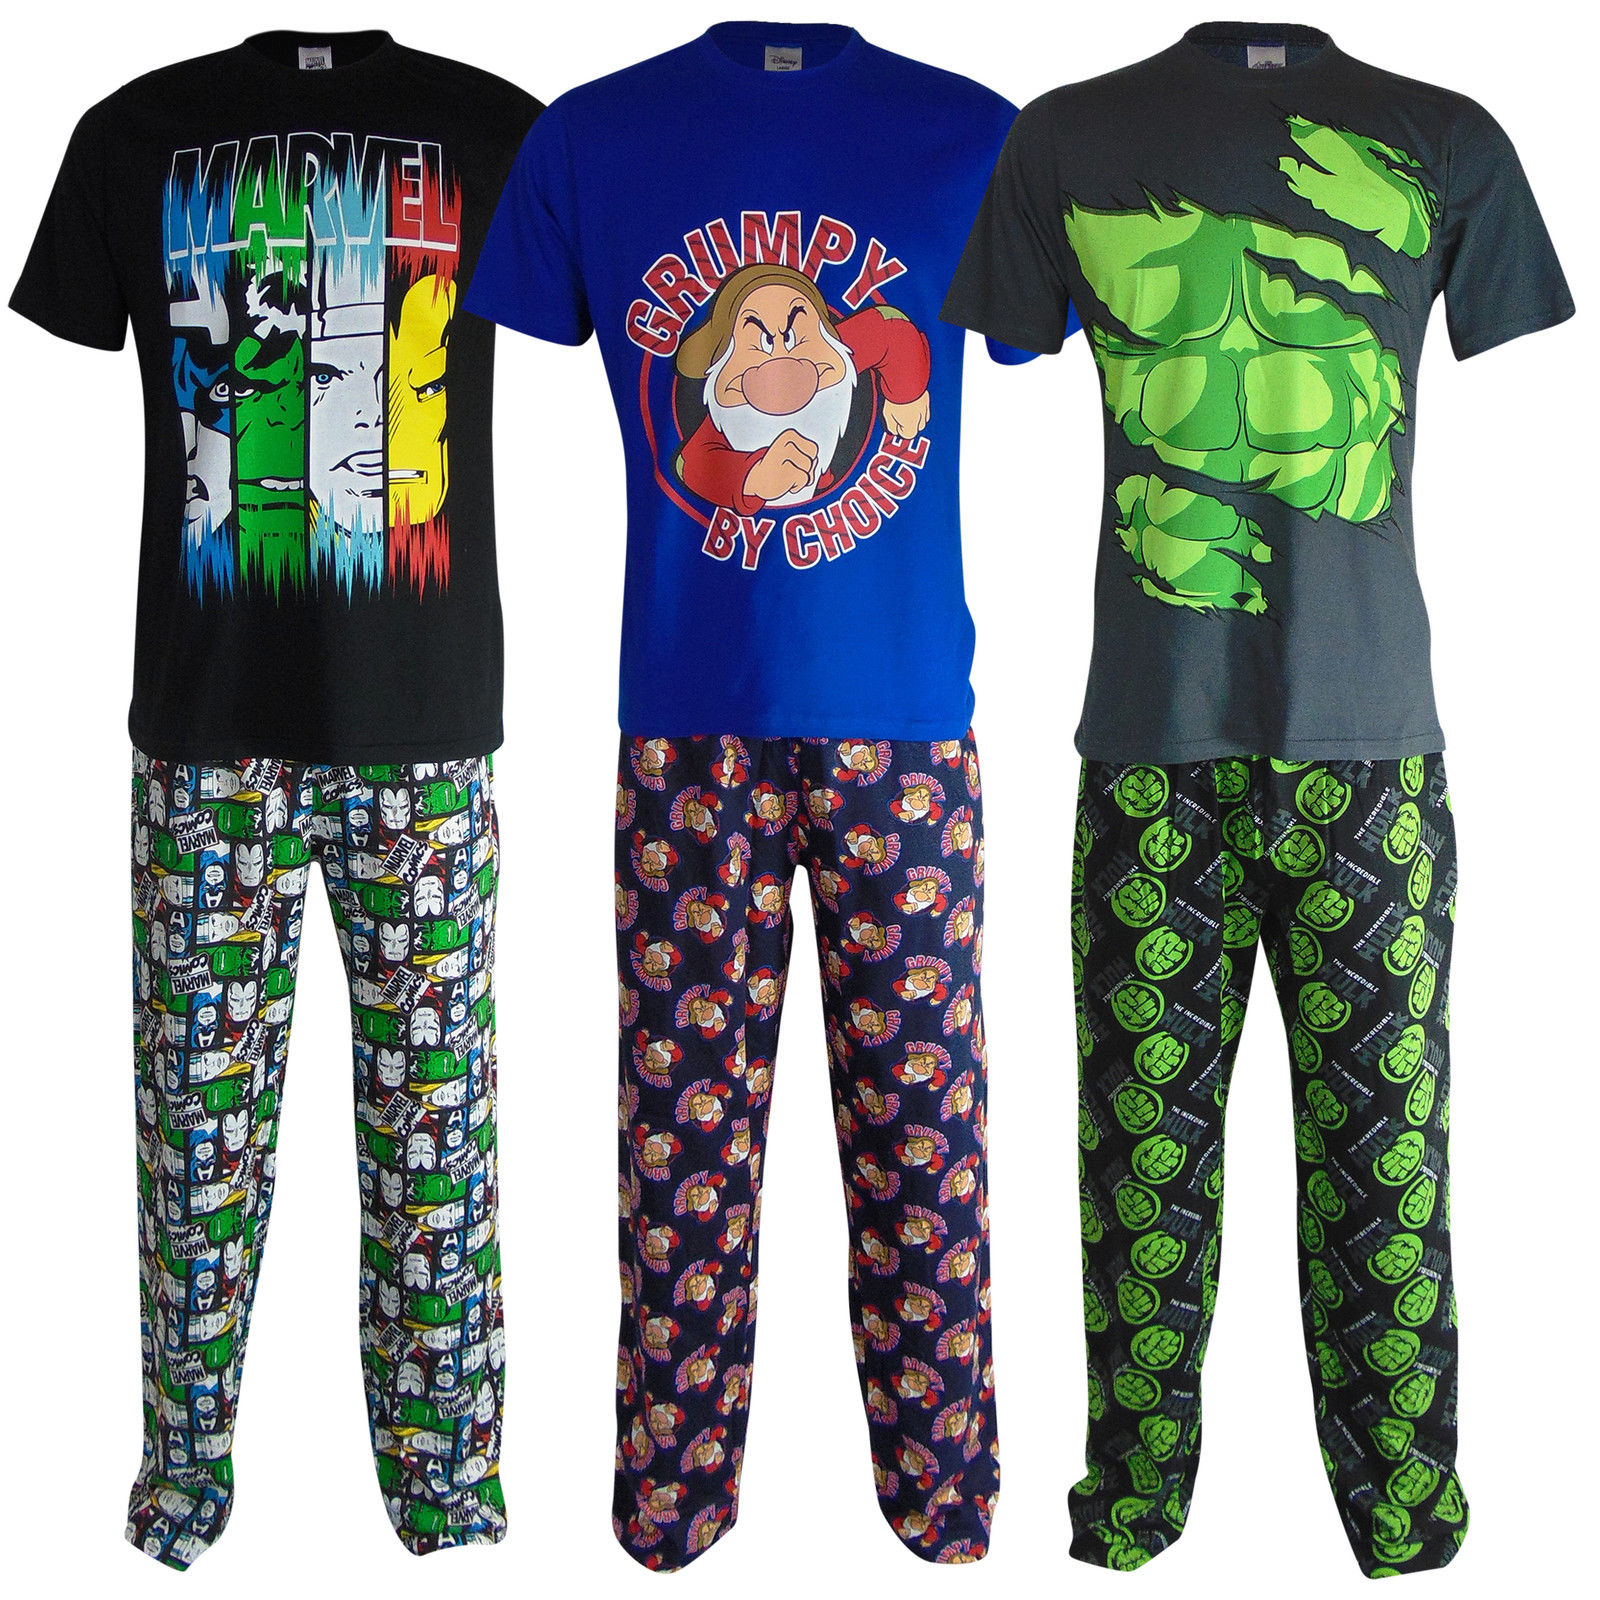 Bedtime Can Be Fun with Men's Novelty Pajama Bottoms. Men's novelty pajama bottoms give you the opportunity to express your individuality from sun-up to sundown. A blend of quirky designs and nostalgic prints contributes to a creative selection of pajama pieces.